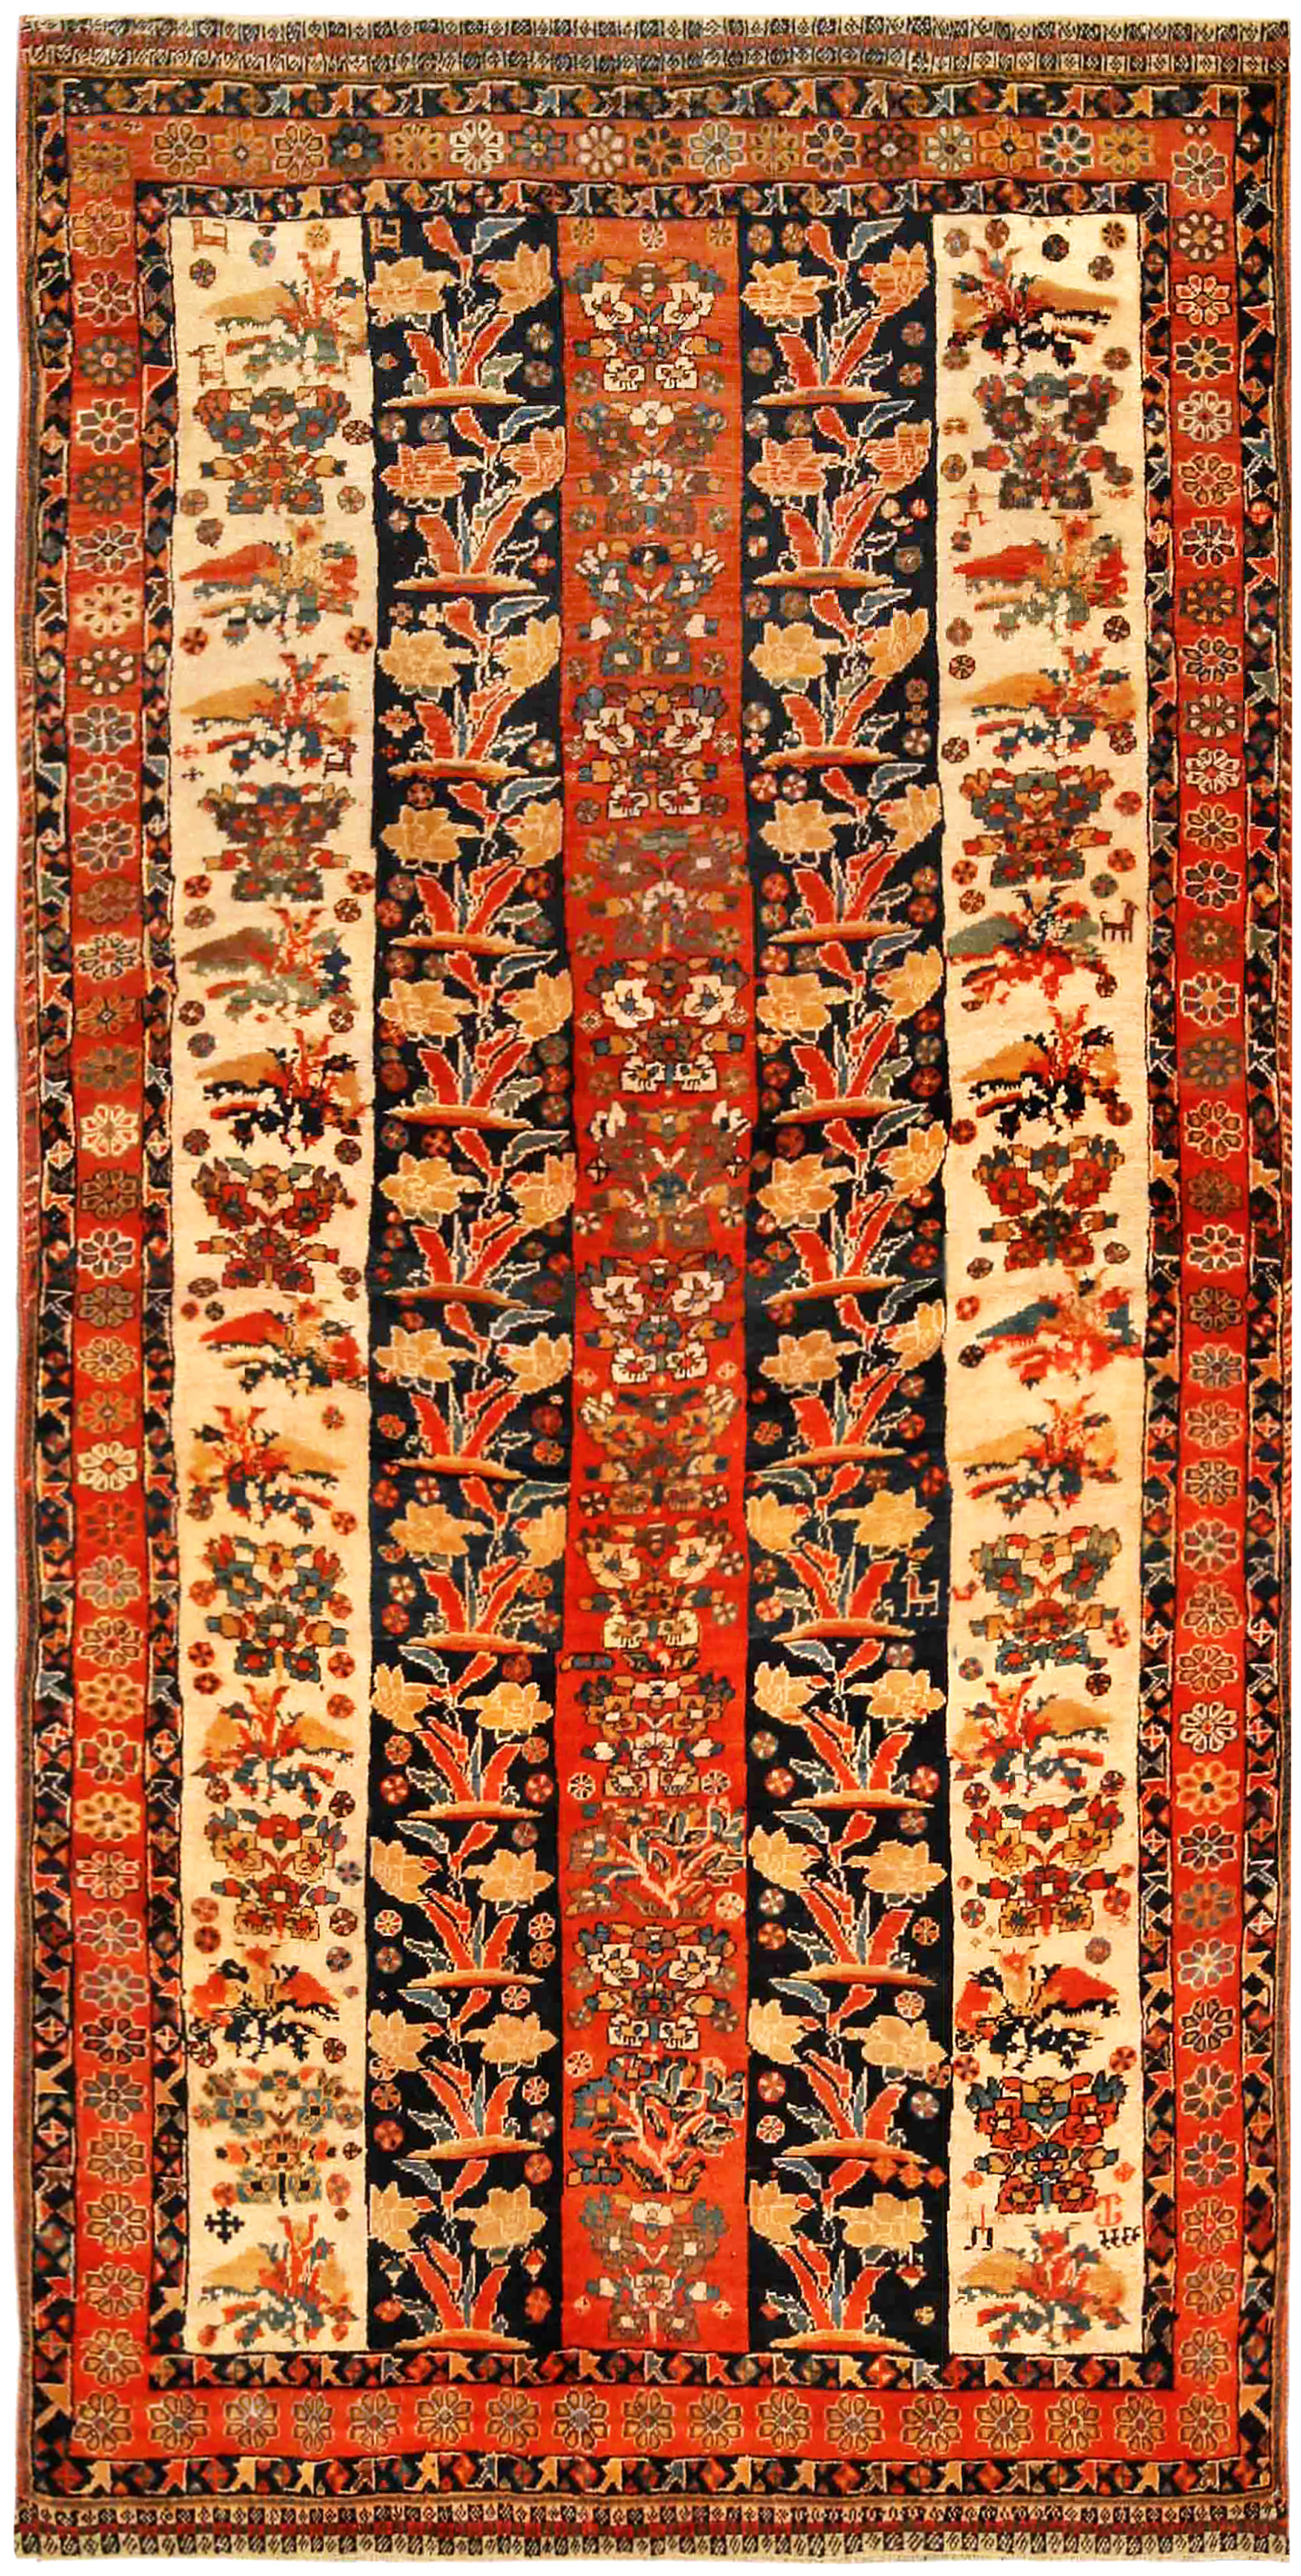 Miscellaneous Persian Rugs By Doris Leslie Blau